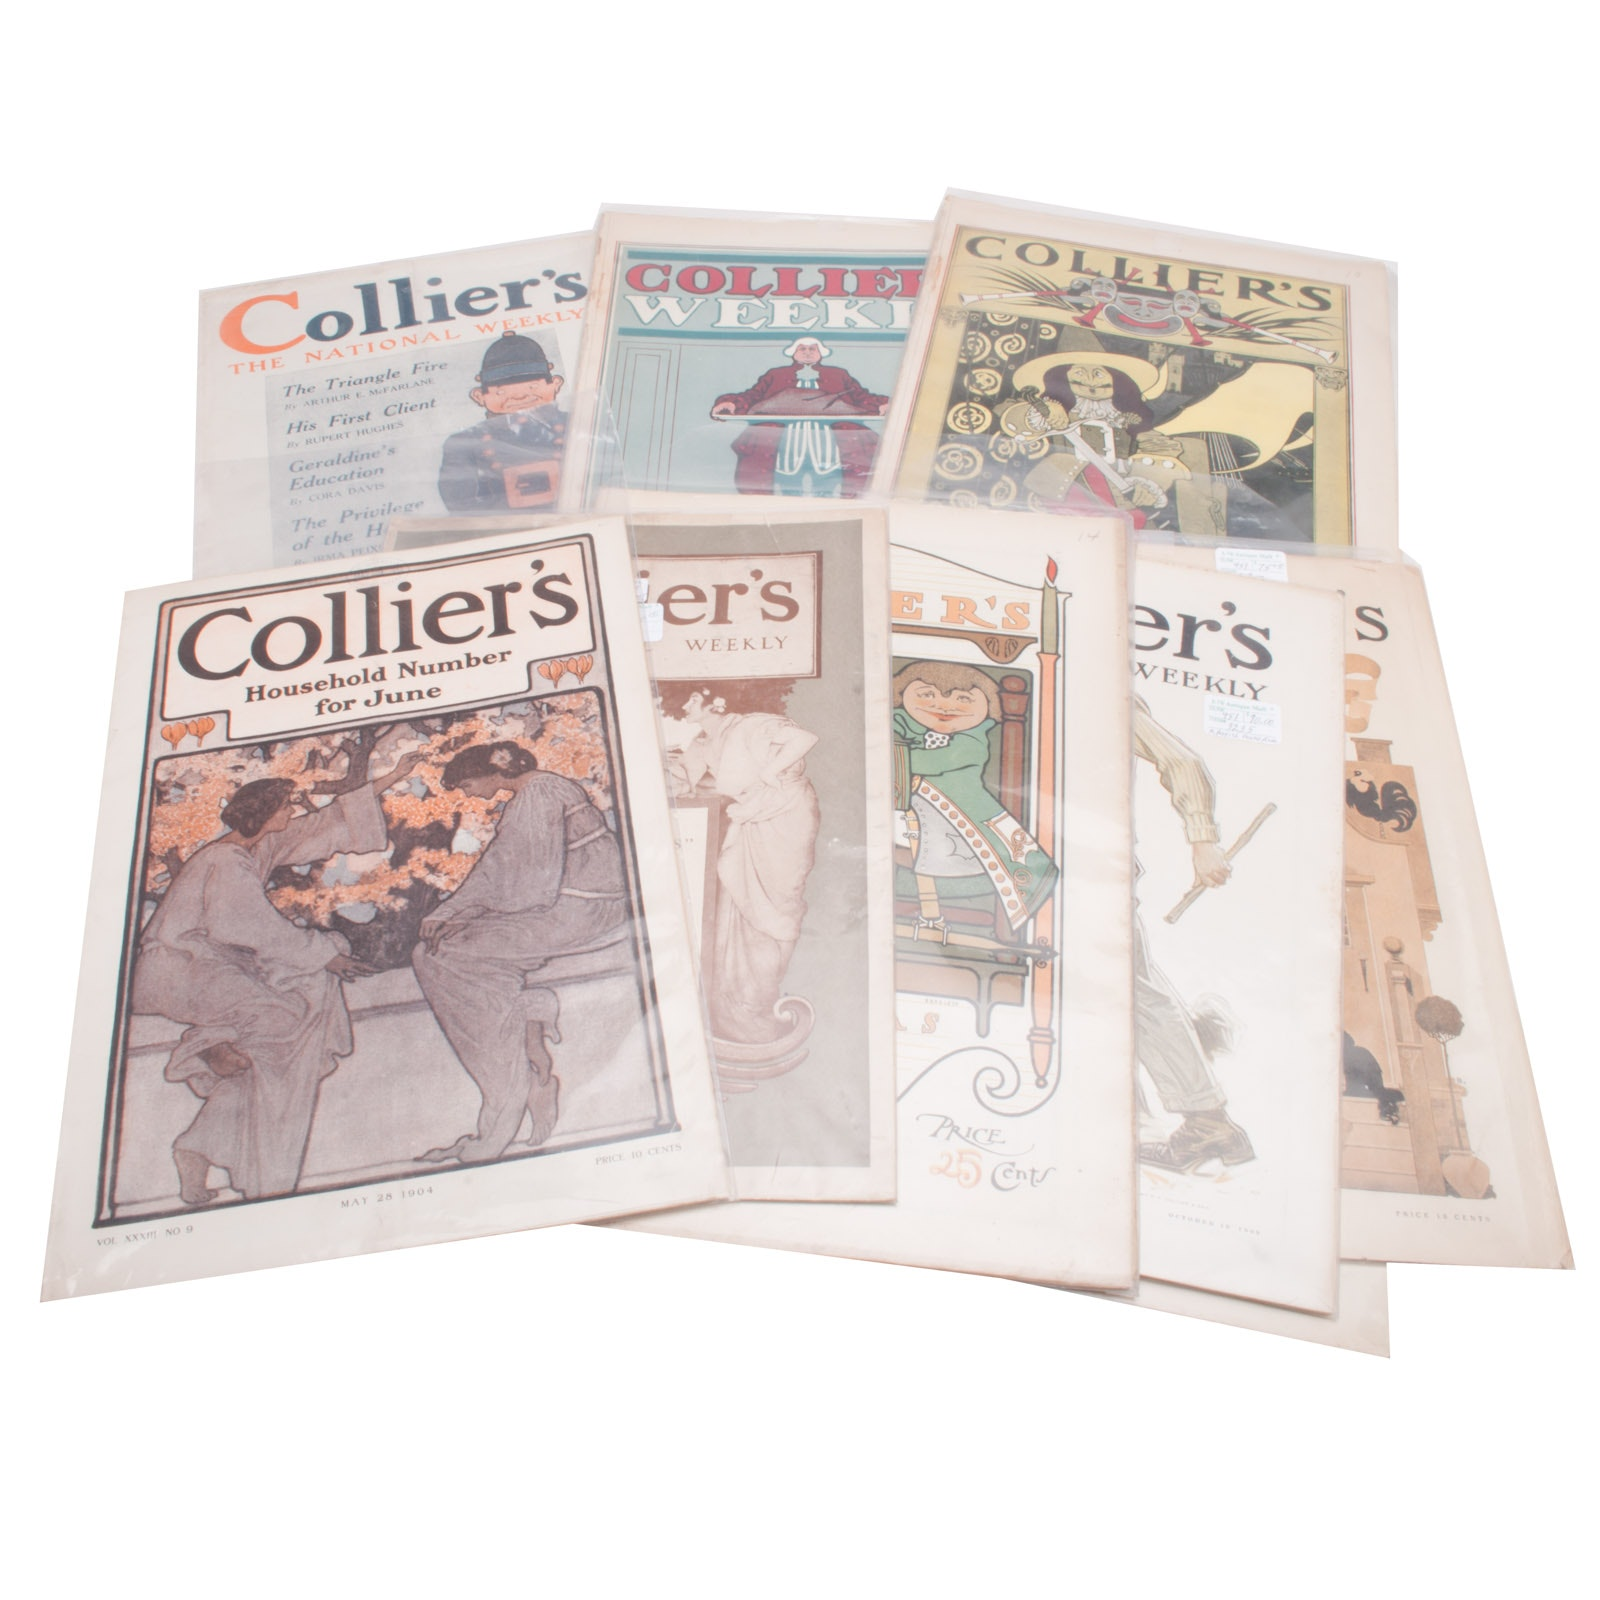 Collection of Antique Collier's Magazines